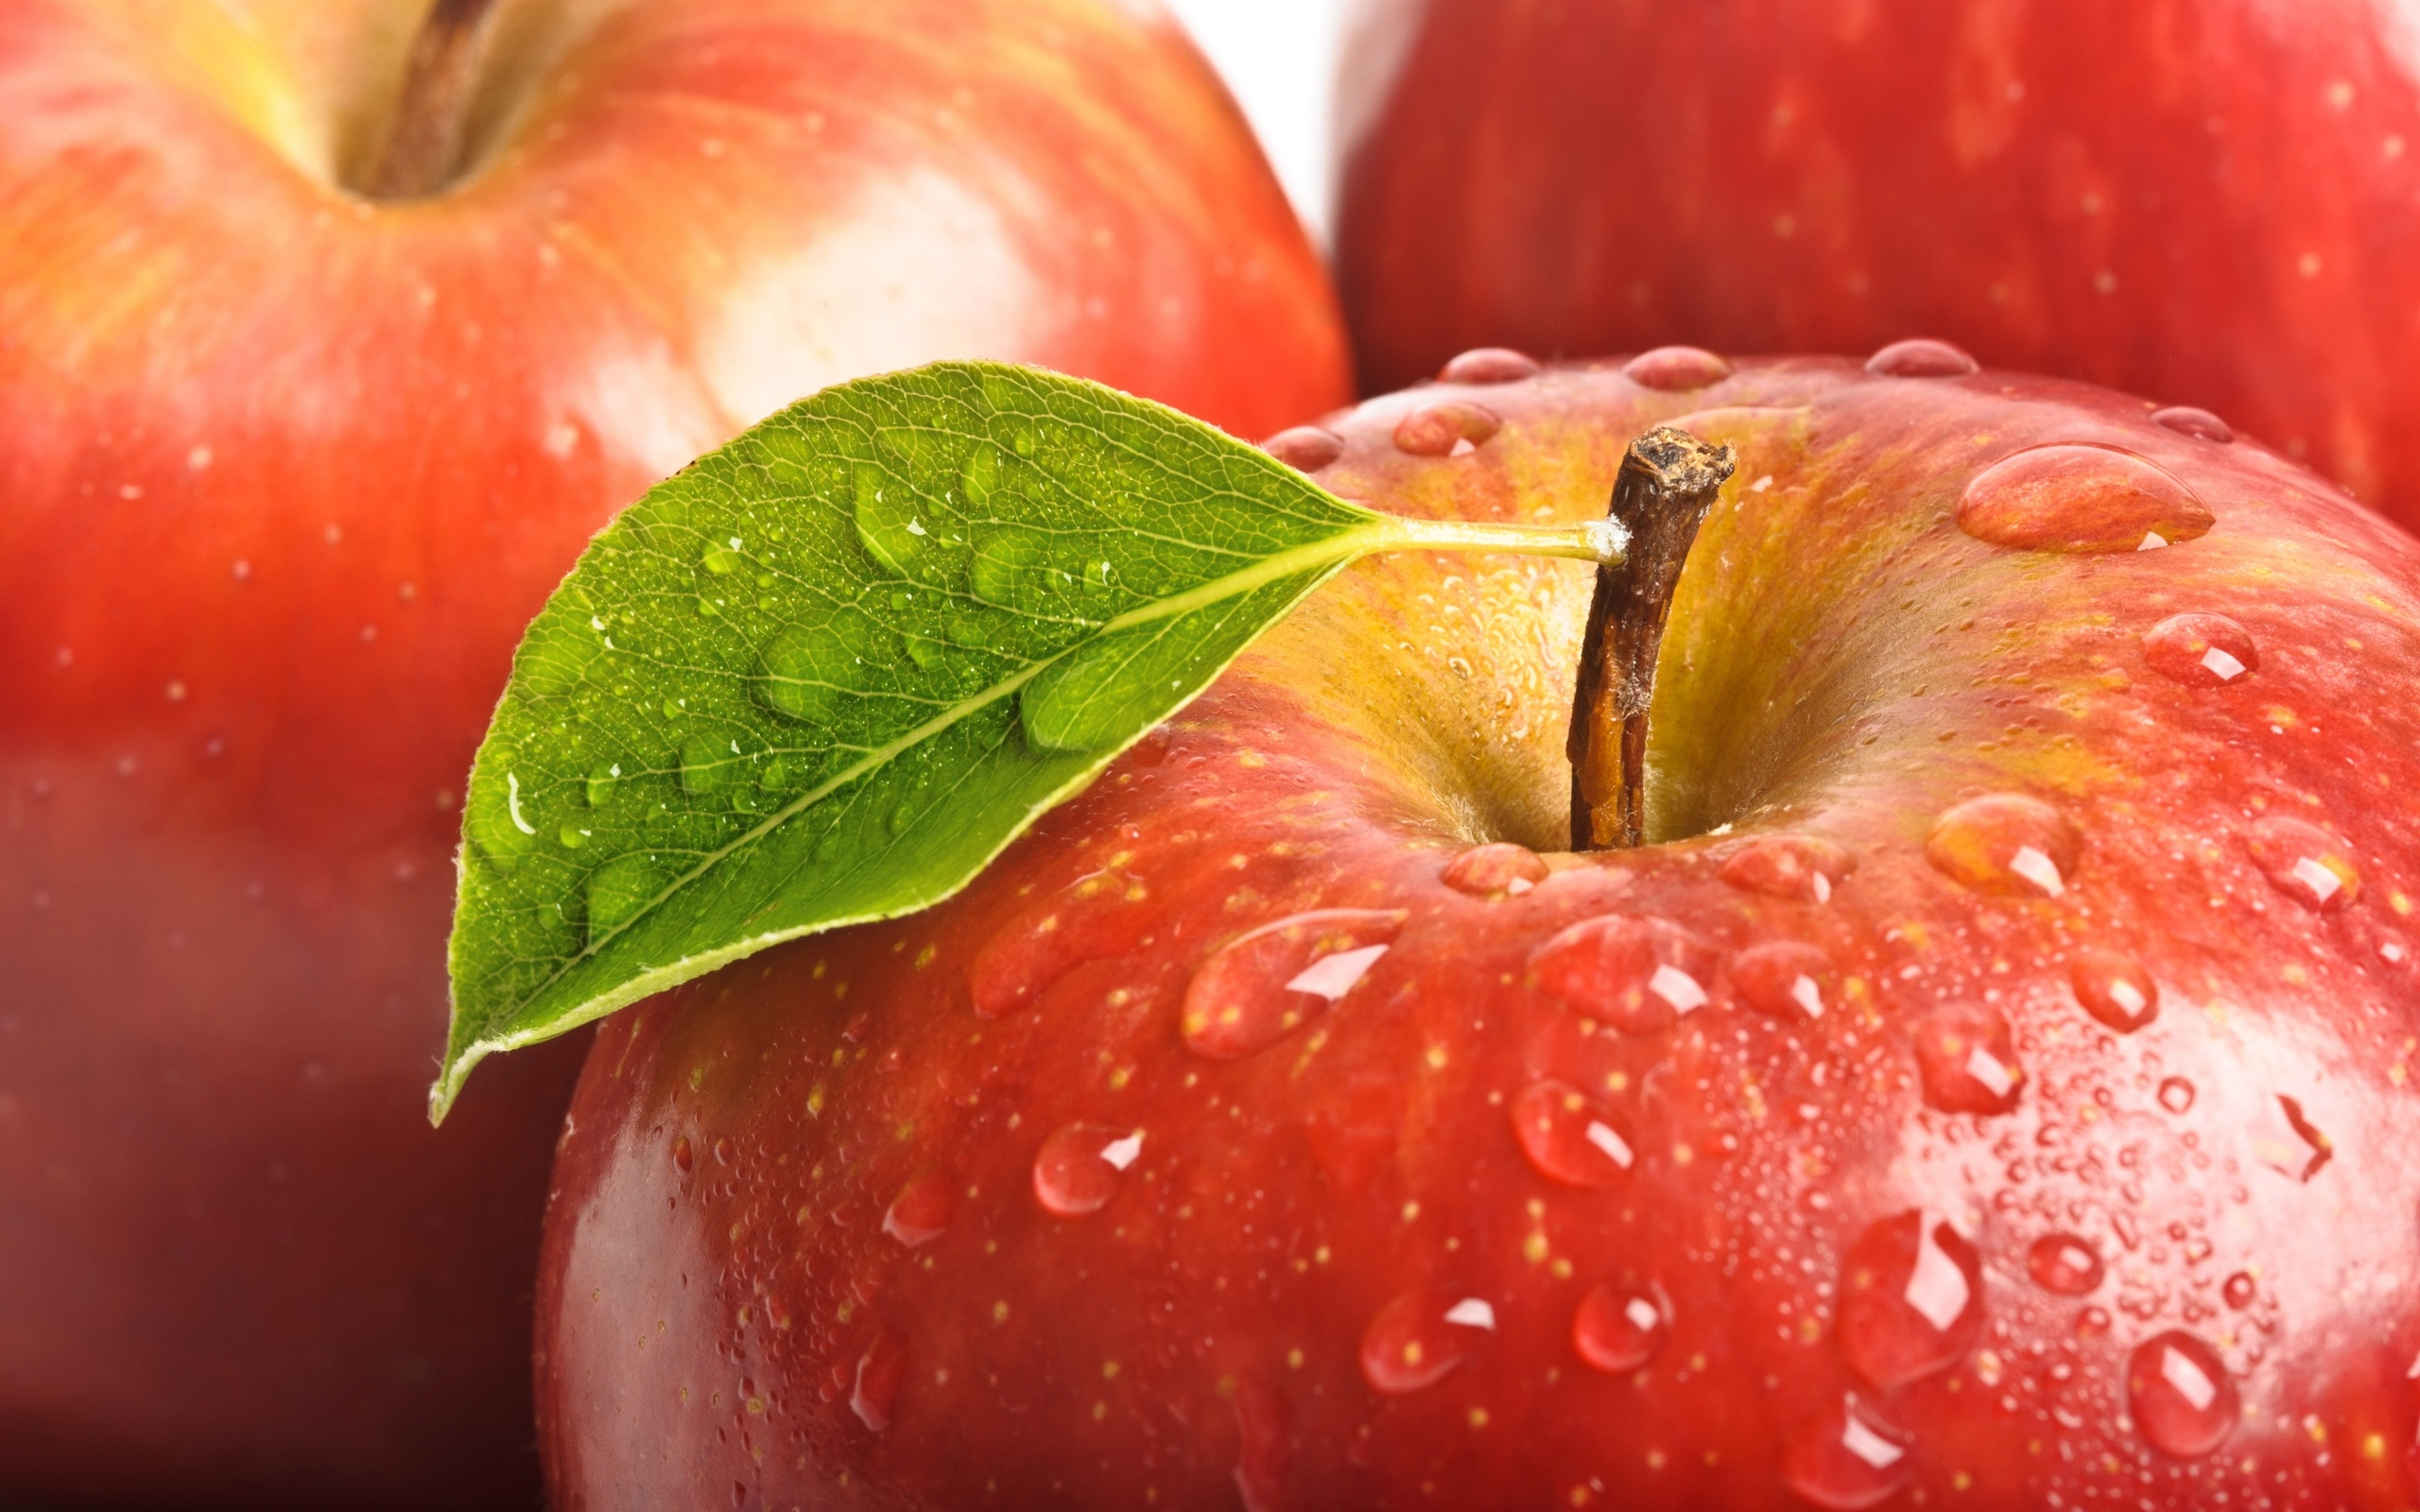 red apple 34696 2560x1600px